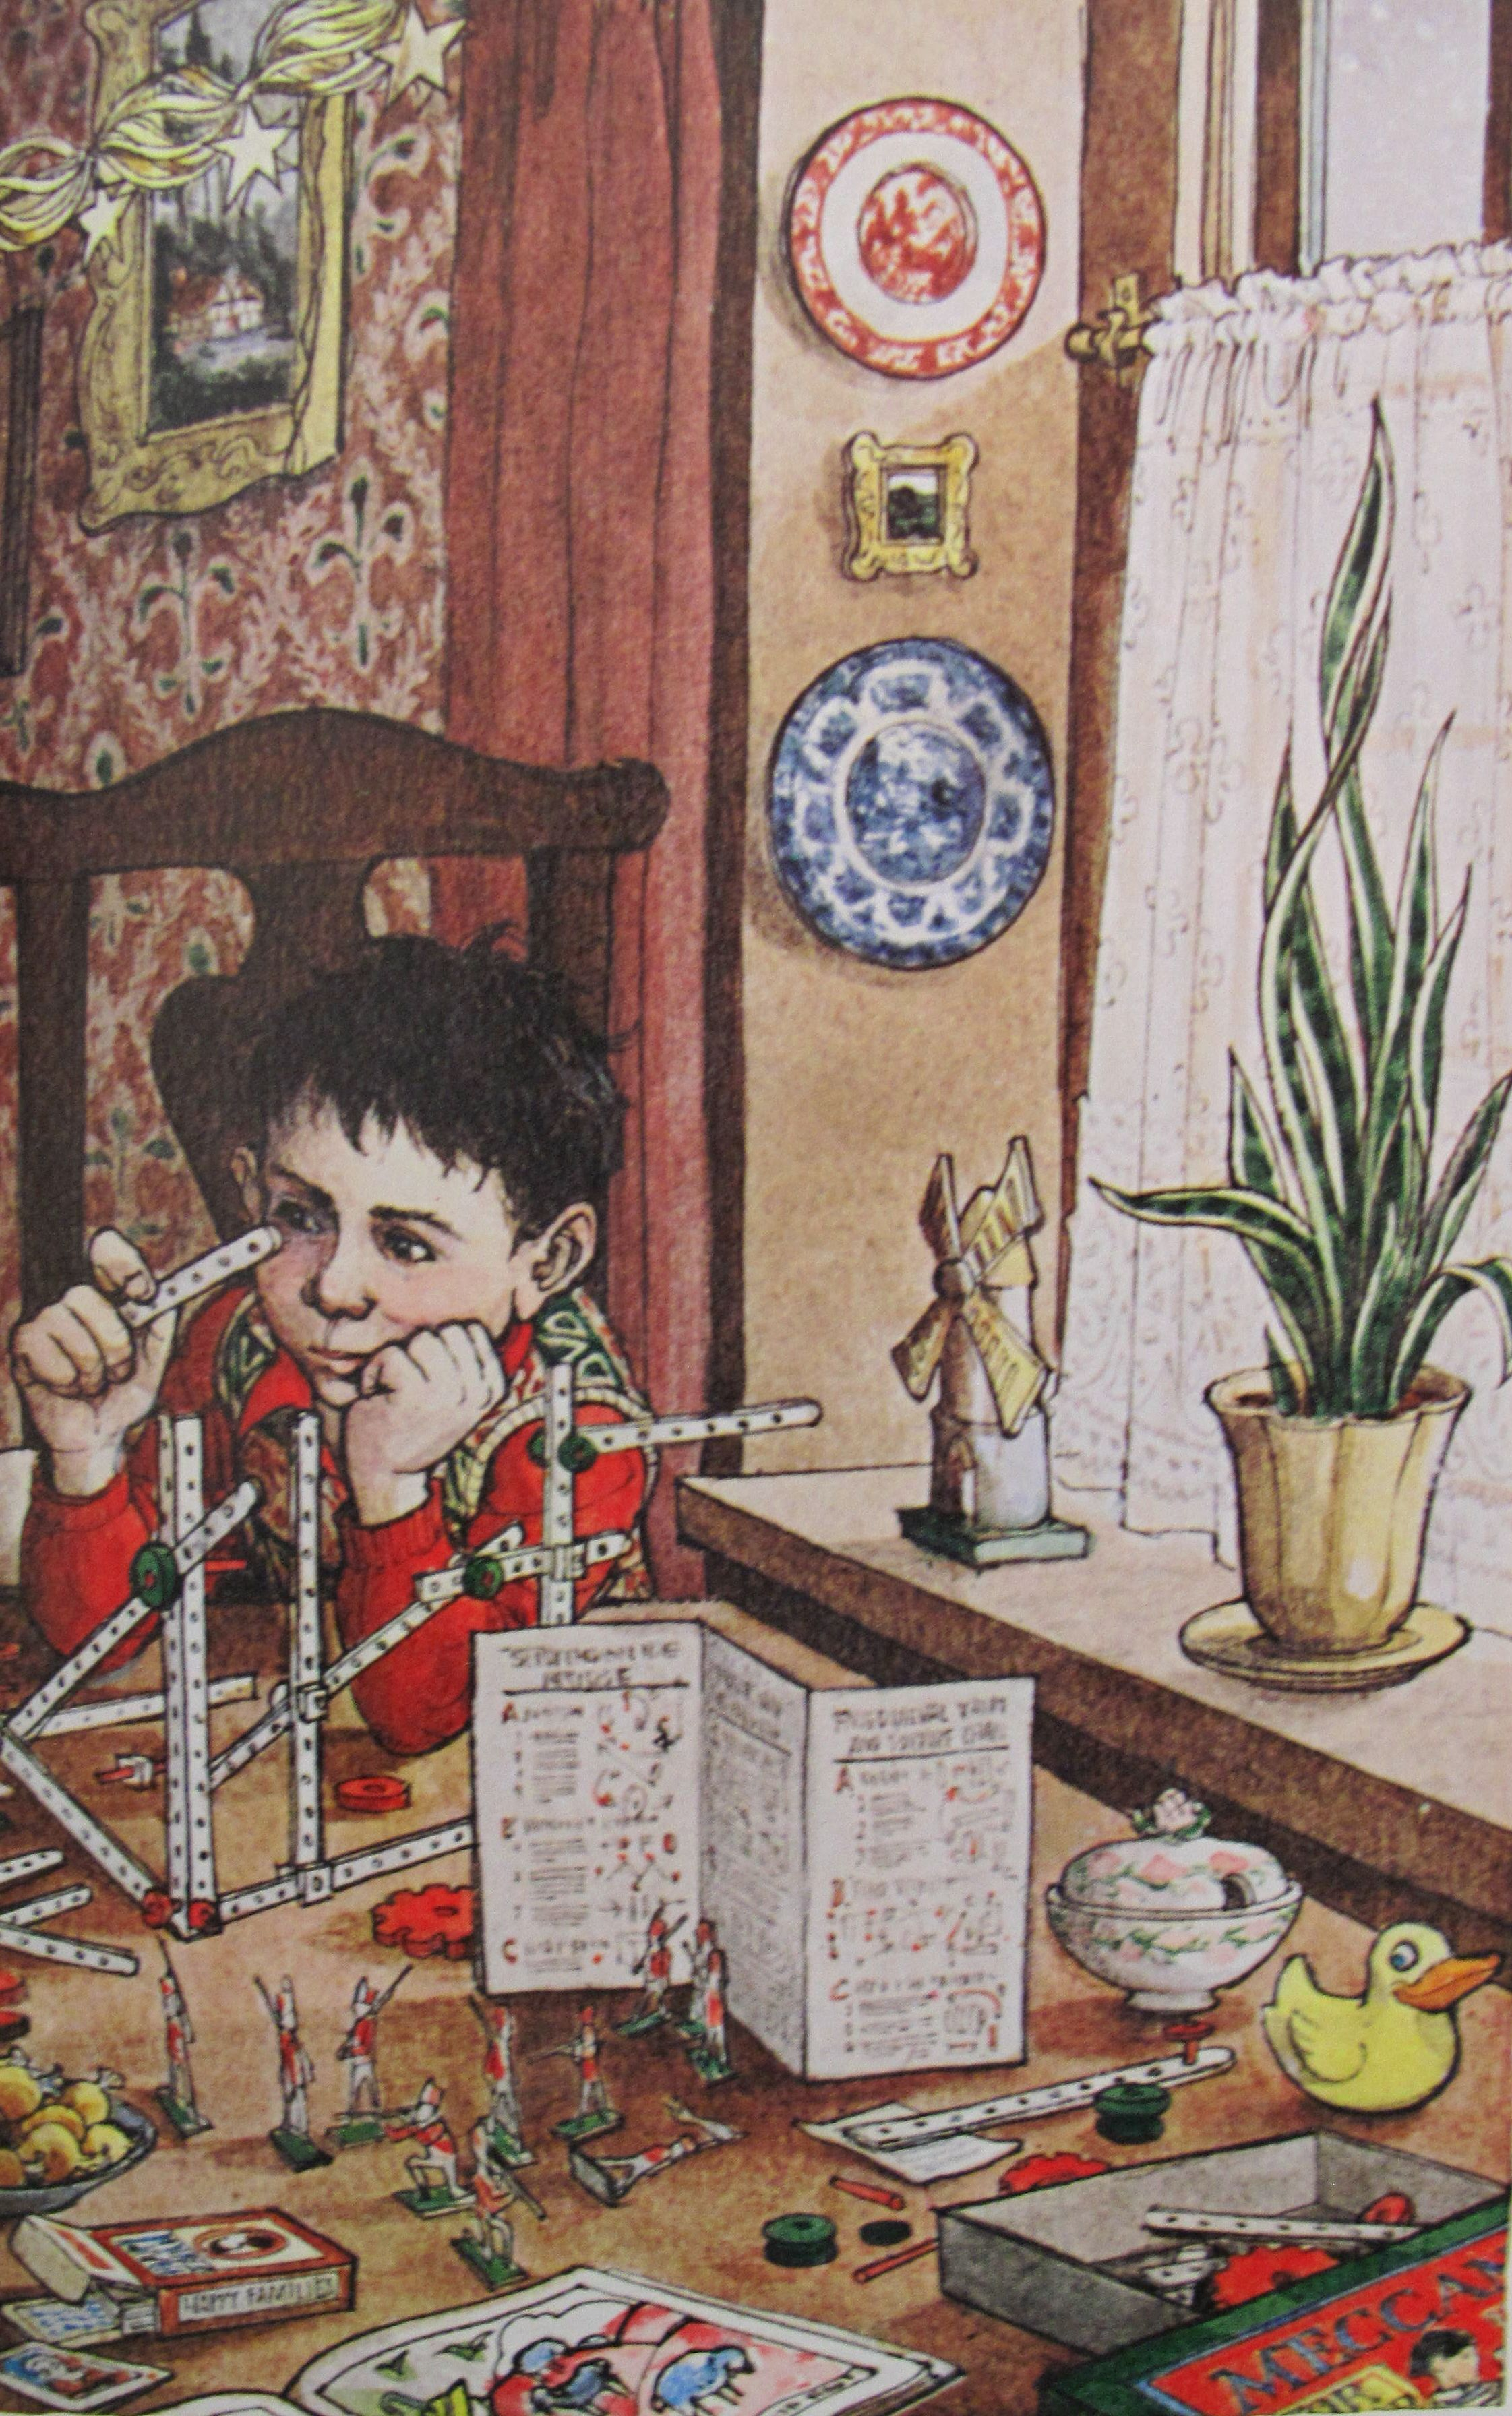 A Childs Christmas In Wales.Trina Schart Hyman From A Child S Christmas In Wales